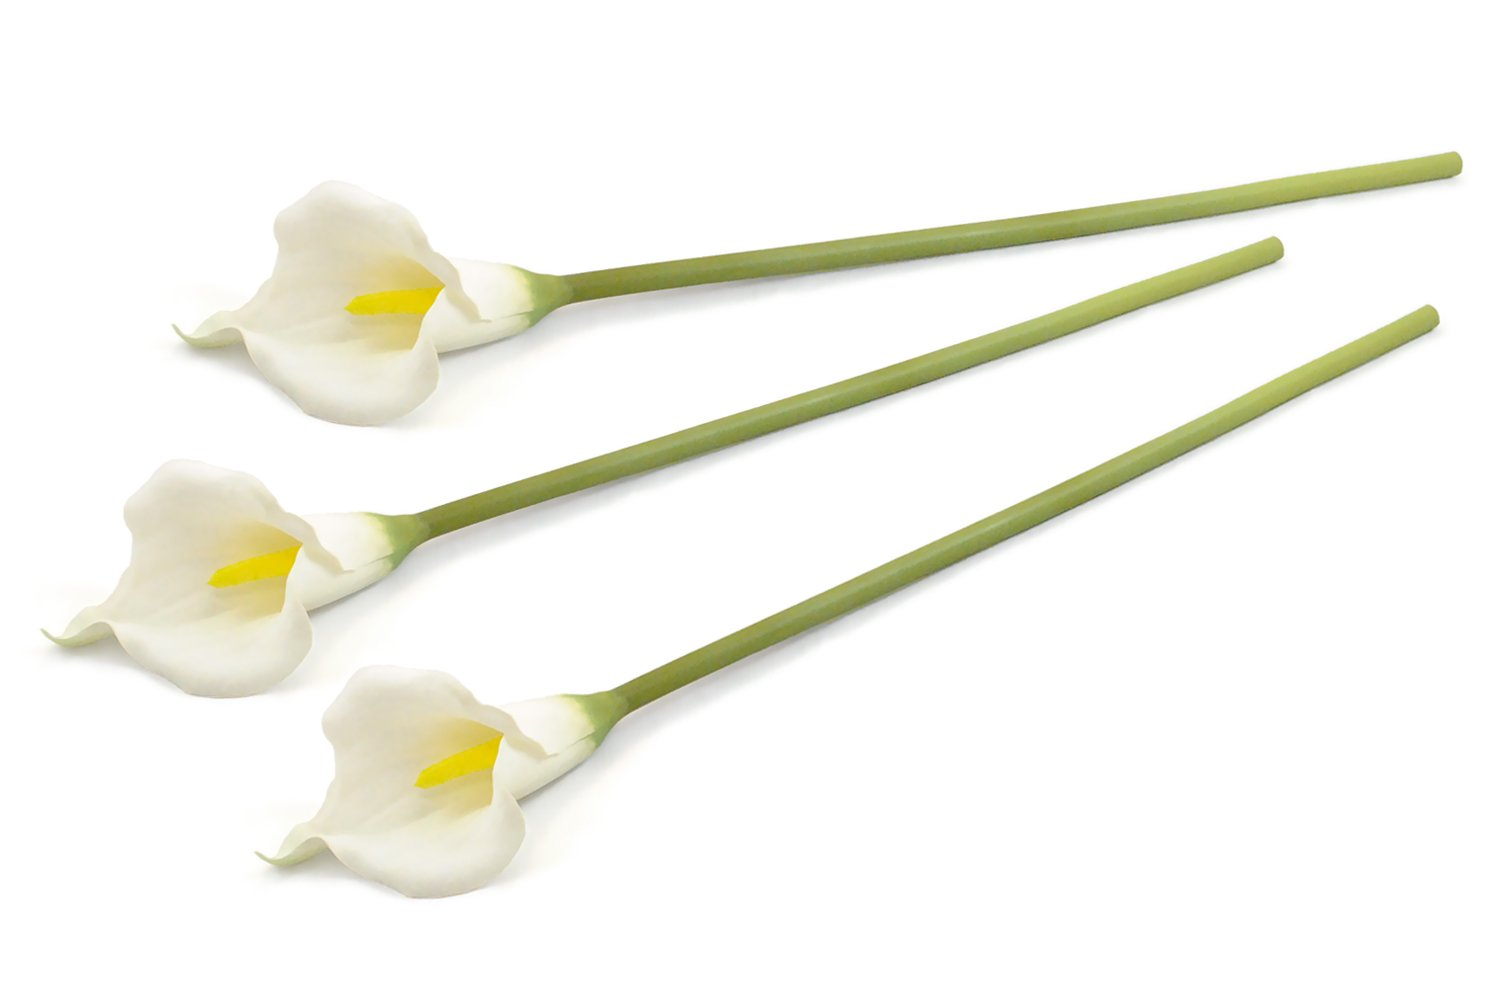 DII 3 Piece Artificial Cala Lily - Natural Silk Flowers For Bridal Bouquet, Home Decoration, DIY, Arts & Crafts Project, Garden, Office Decor, Centerpiece Décor - White by DII